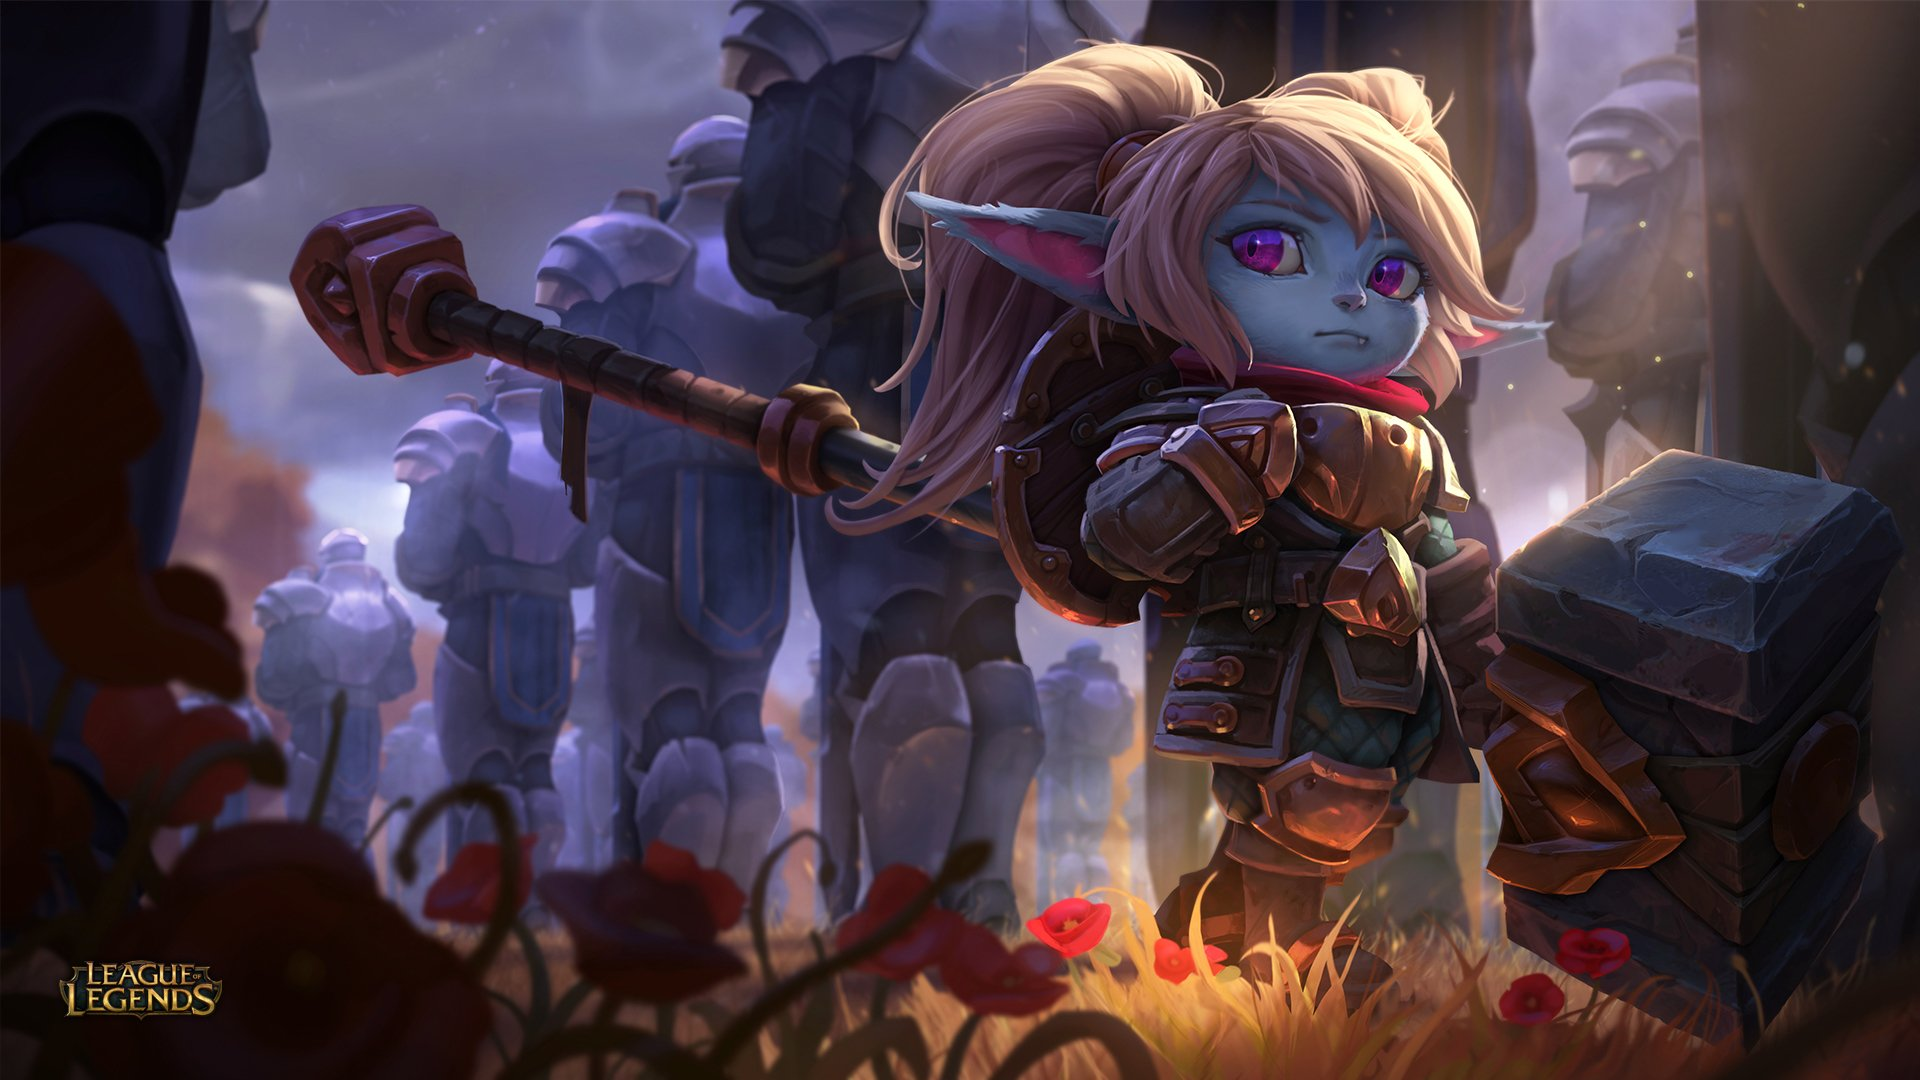 55 Poppy League Of Legends Hd Wallpapers Background Images